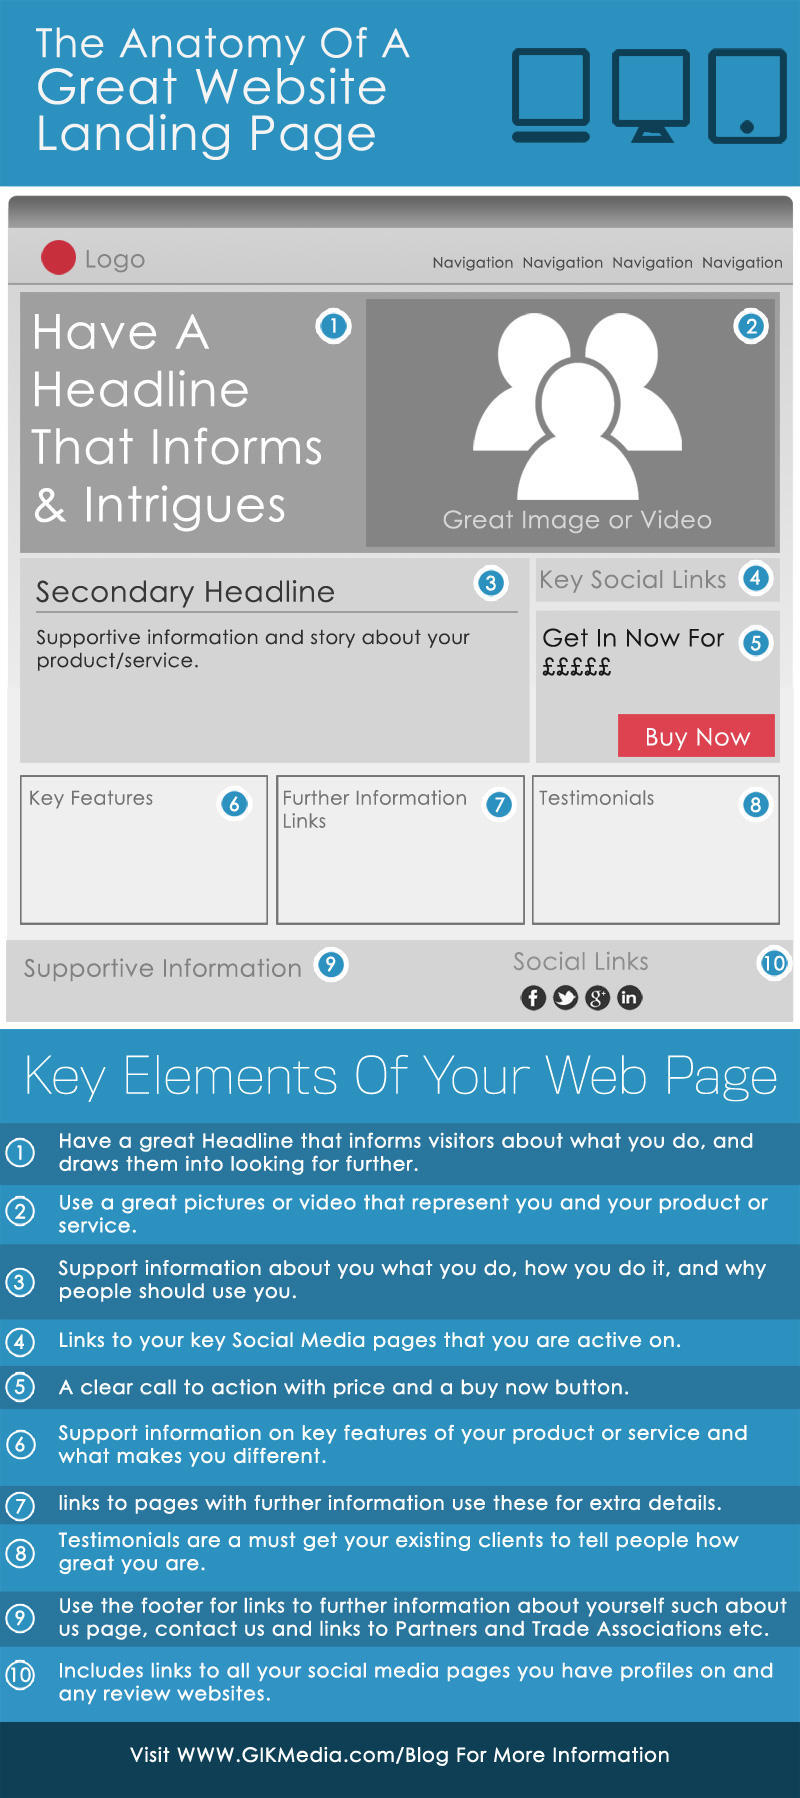 The Anatomy Of A Great Website Landing Page InfoGraphic Gikmedia